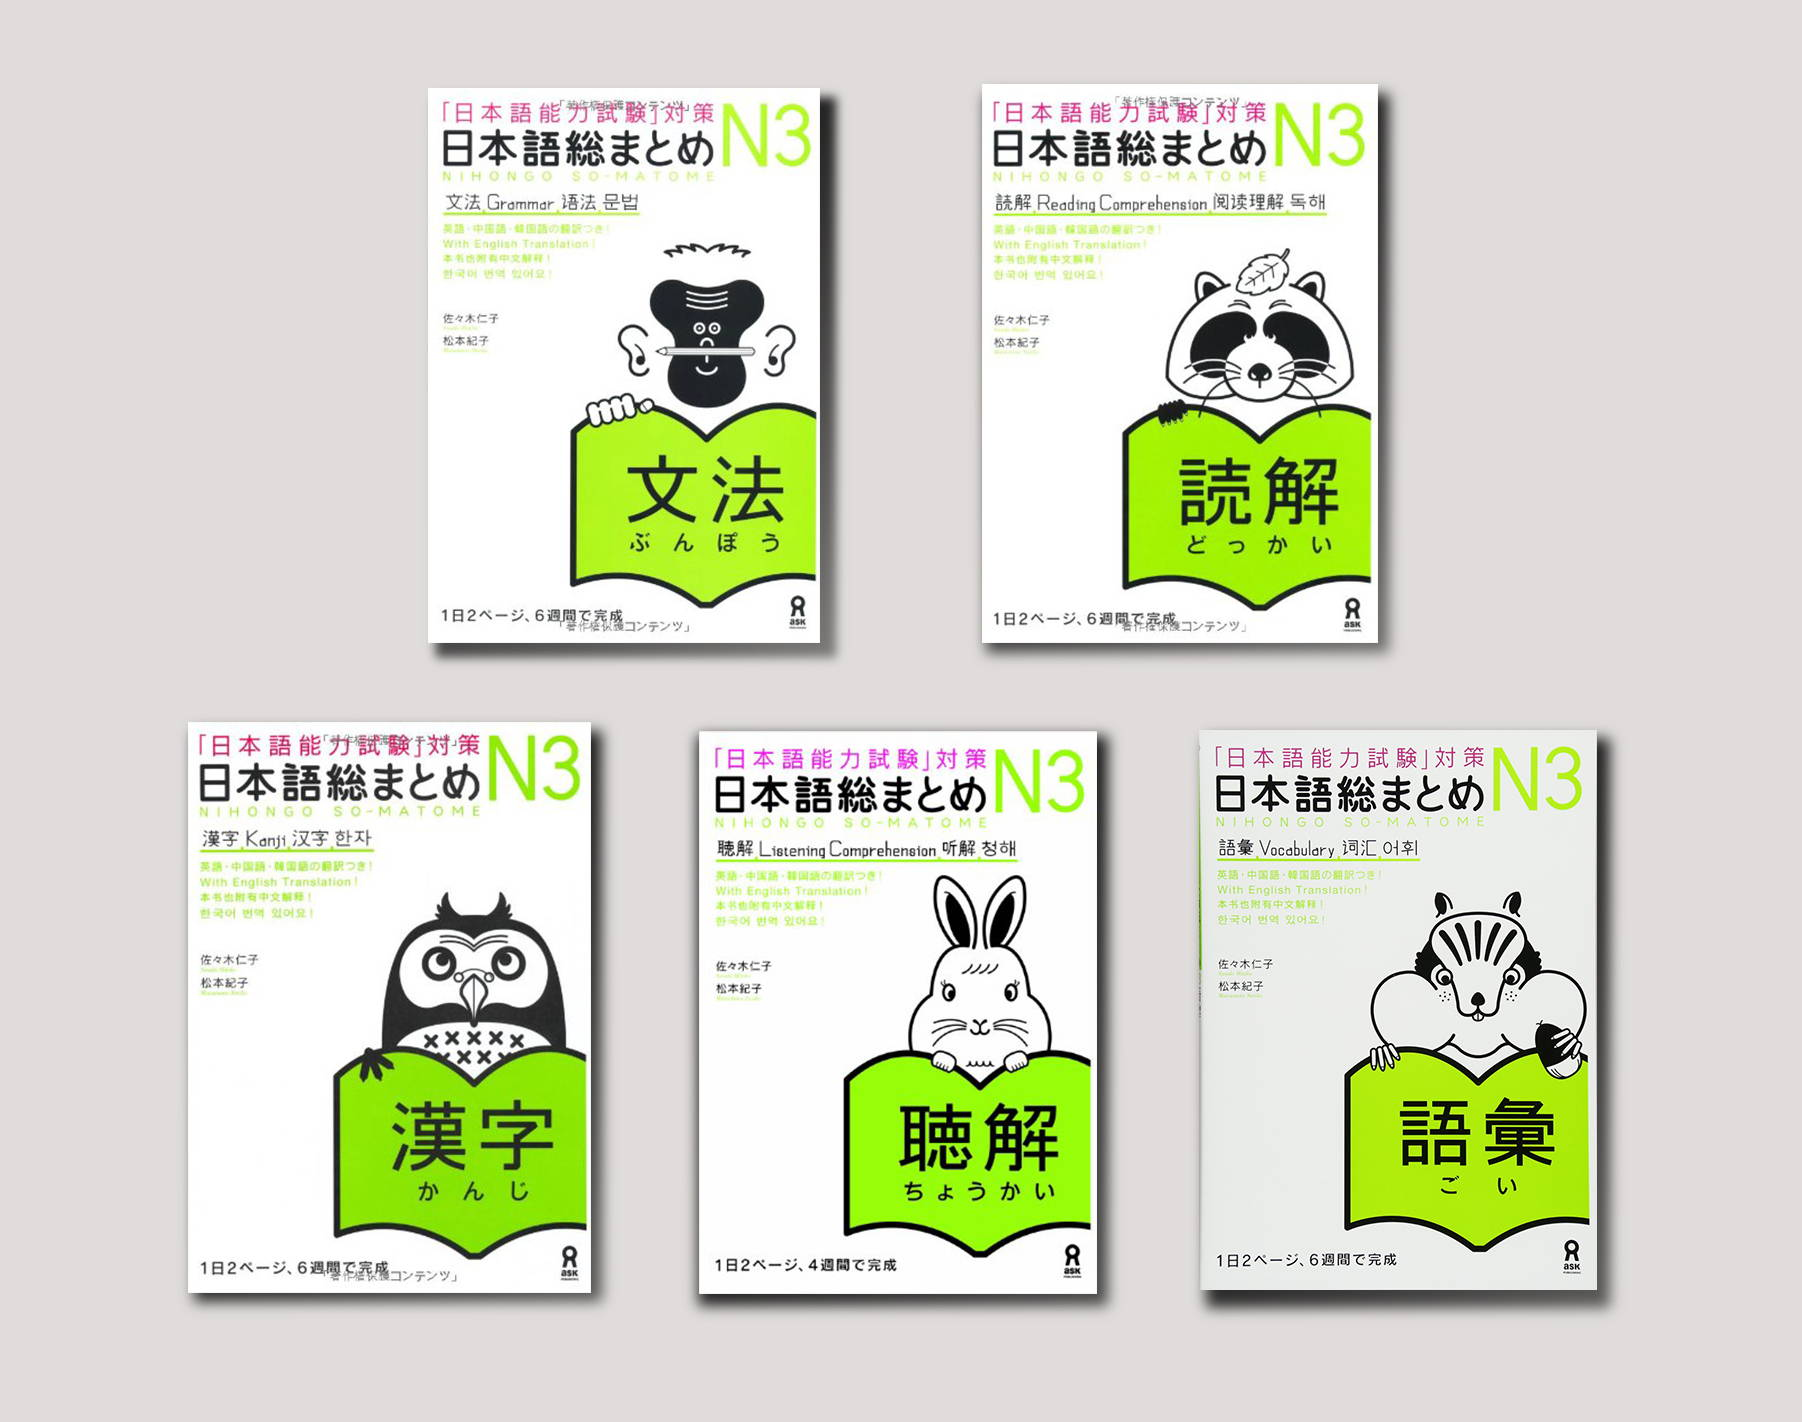 A collection of Nihongo So Matome books.